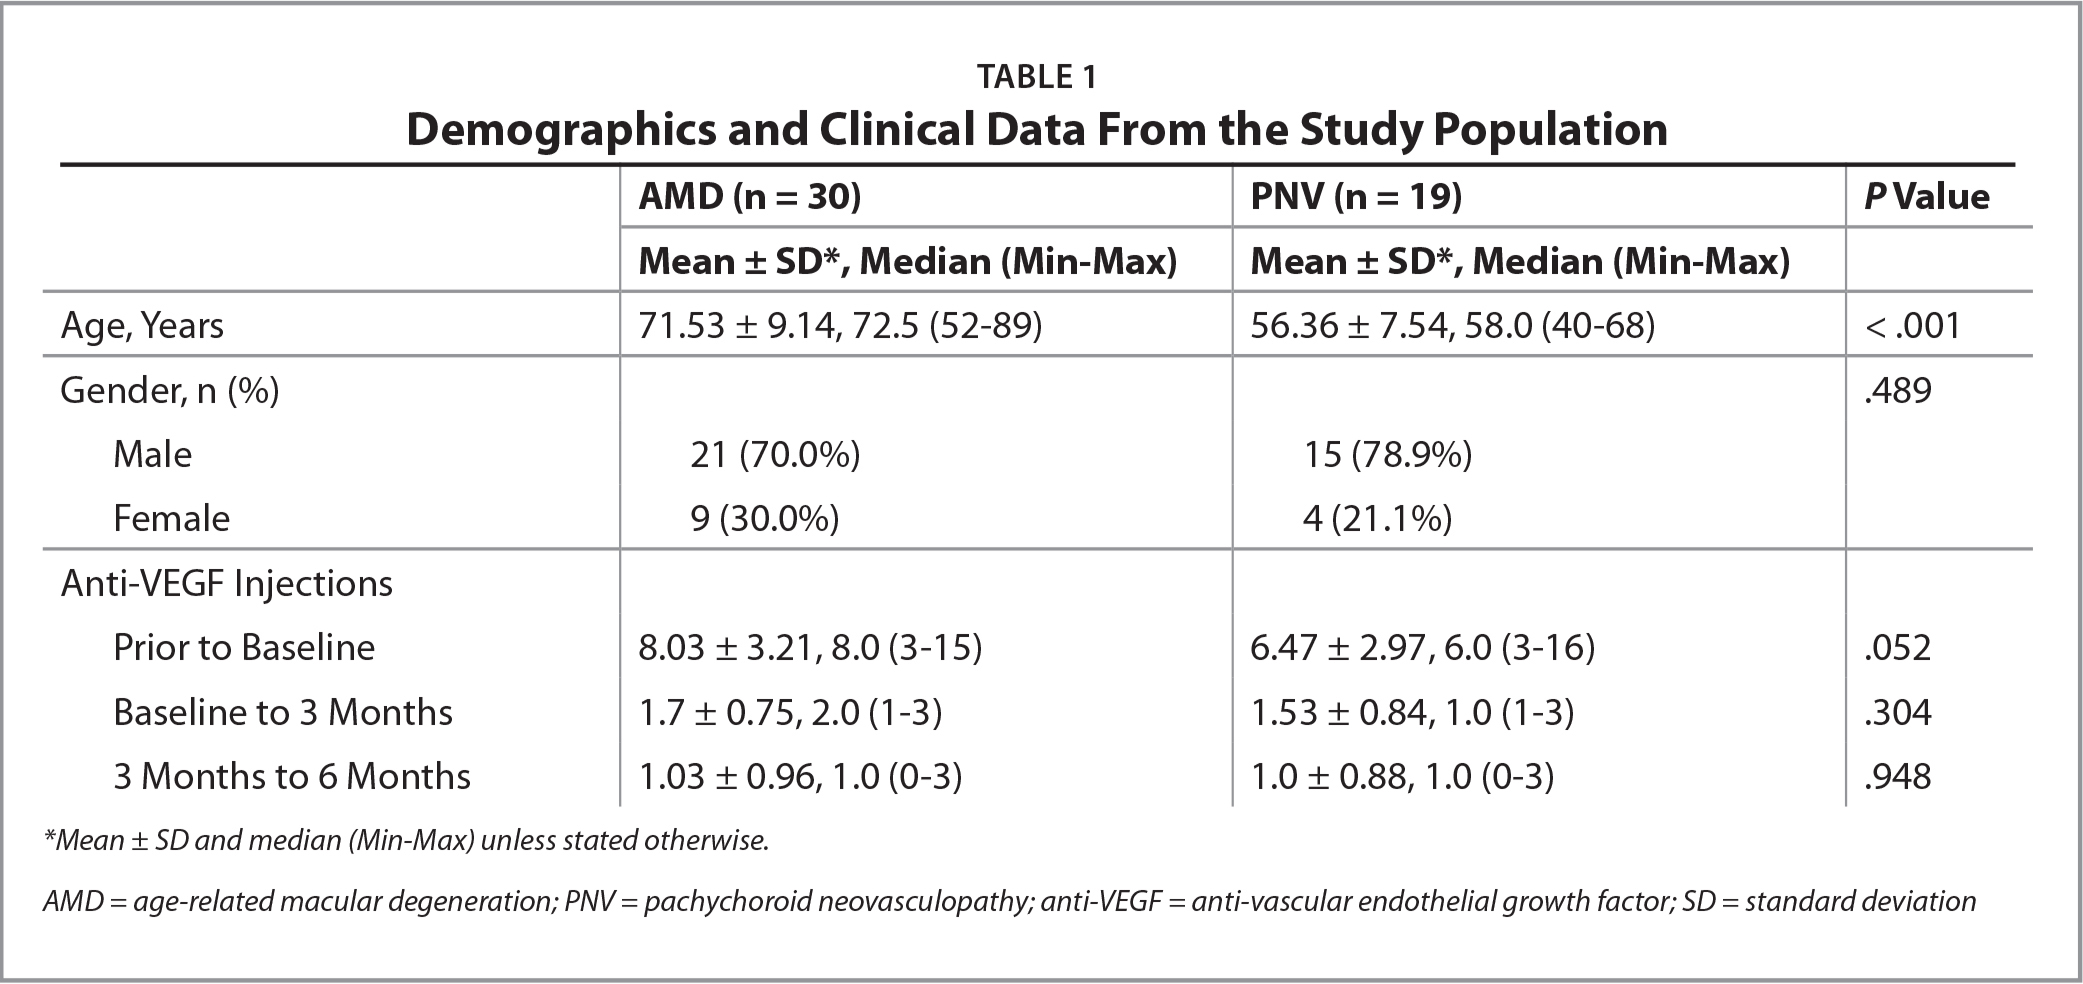 Demographics and Clinical Data From the Study Population